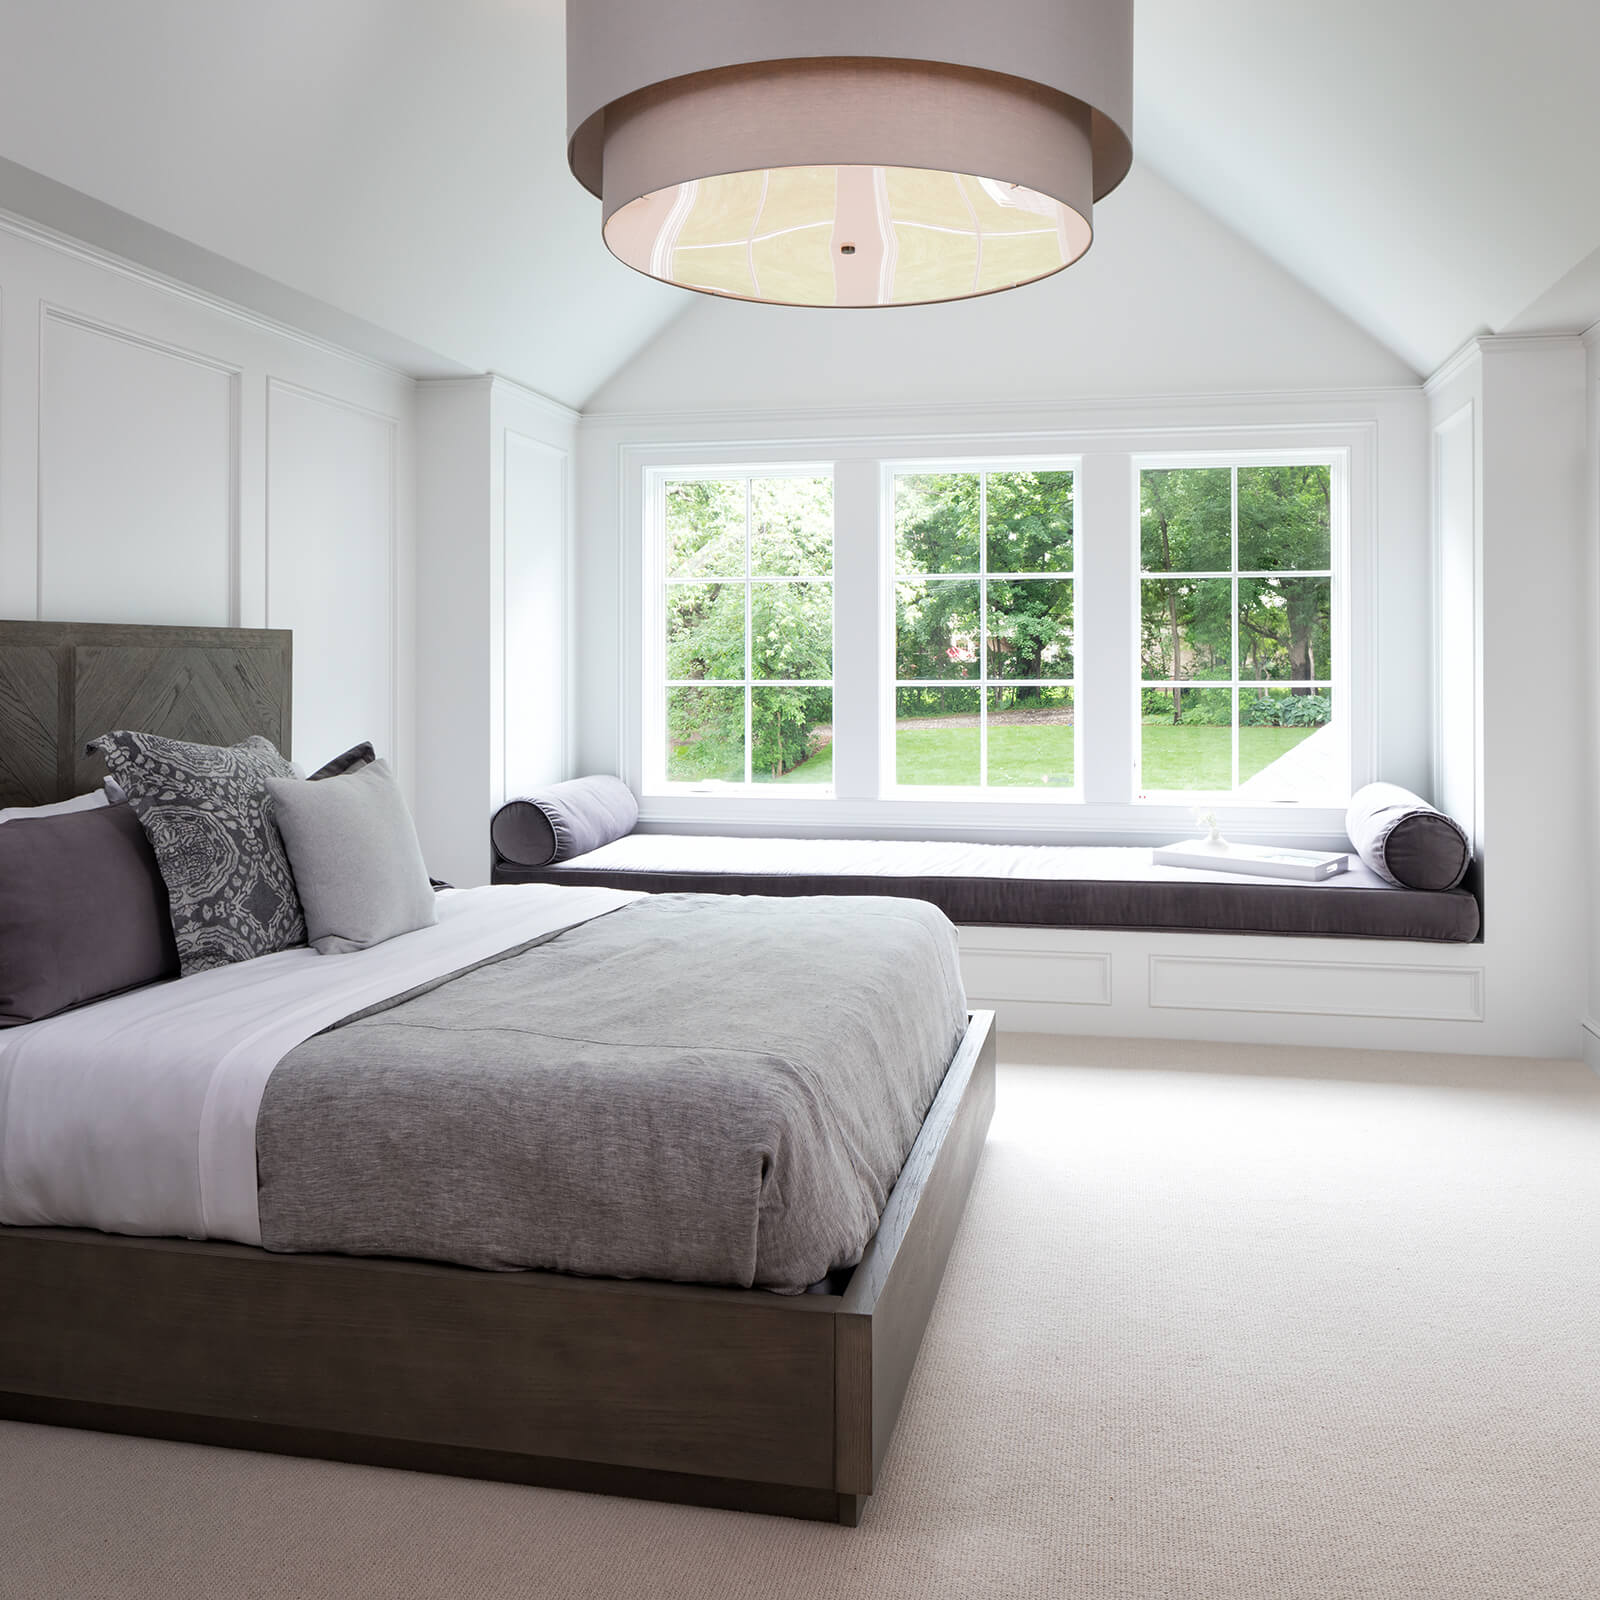 Large bedroom with Marvin Elevate Casement Windows